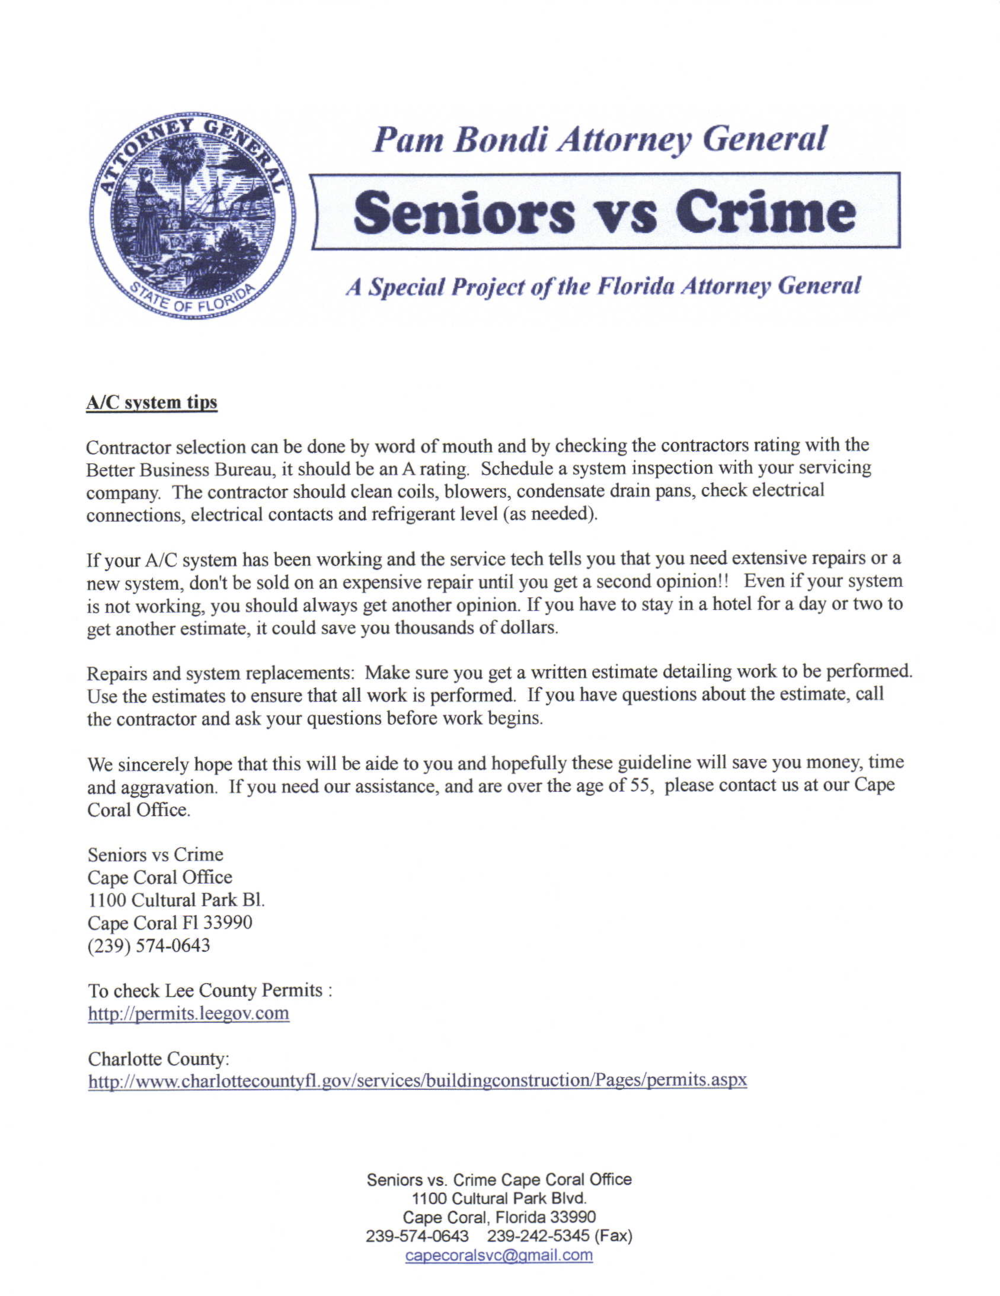 PHOTO:  A Seniors vs. Crime Consumer Protection Notice from The Office of Attorney General Pam Bondi.  (Photo courtesy of Cape Coral Police Department)